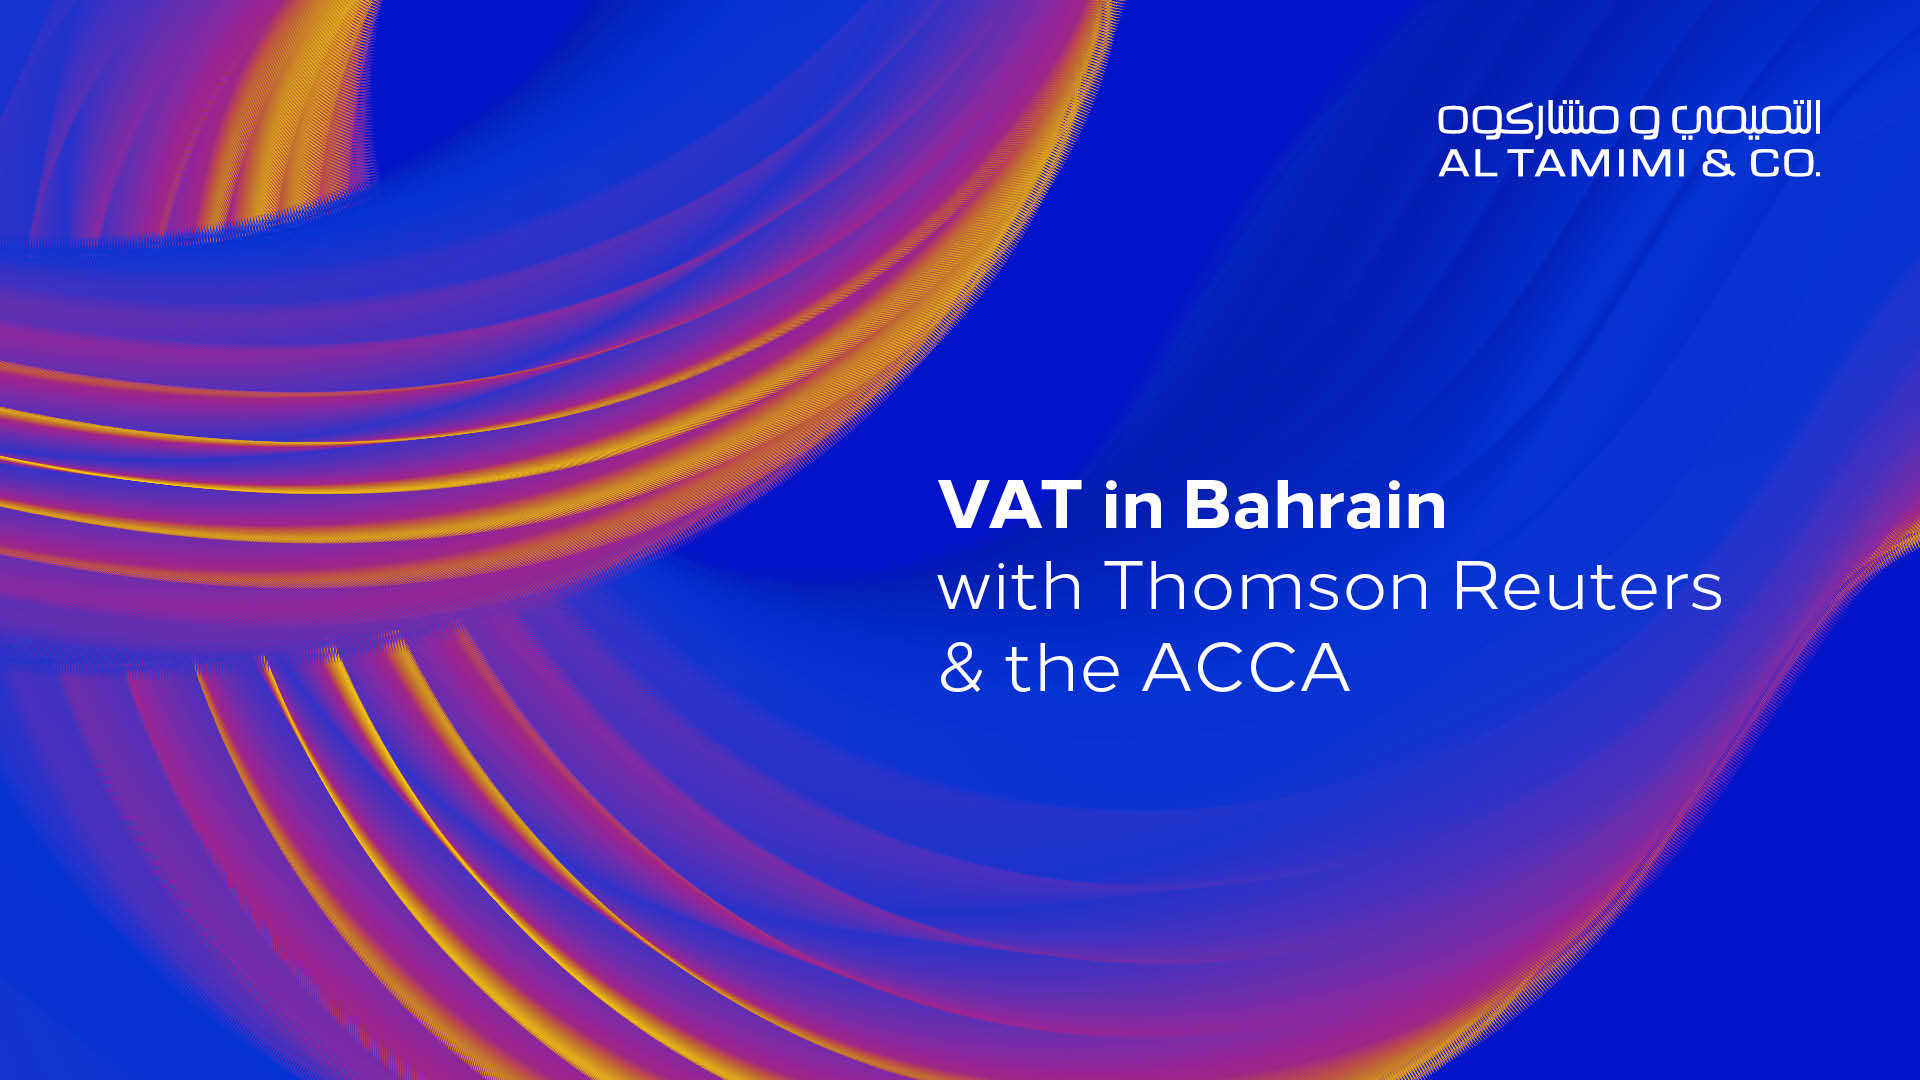 Legal Snapshot: VAT in Bahrain with Thomson Reuters and the ACCA